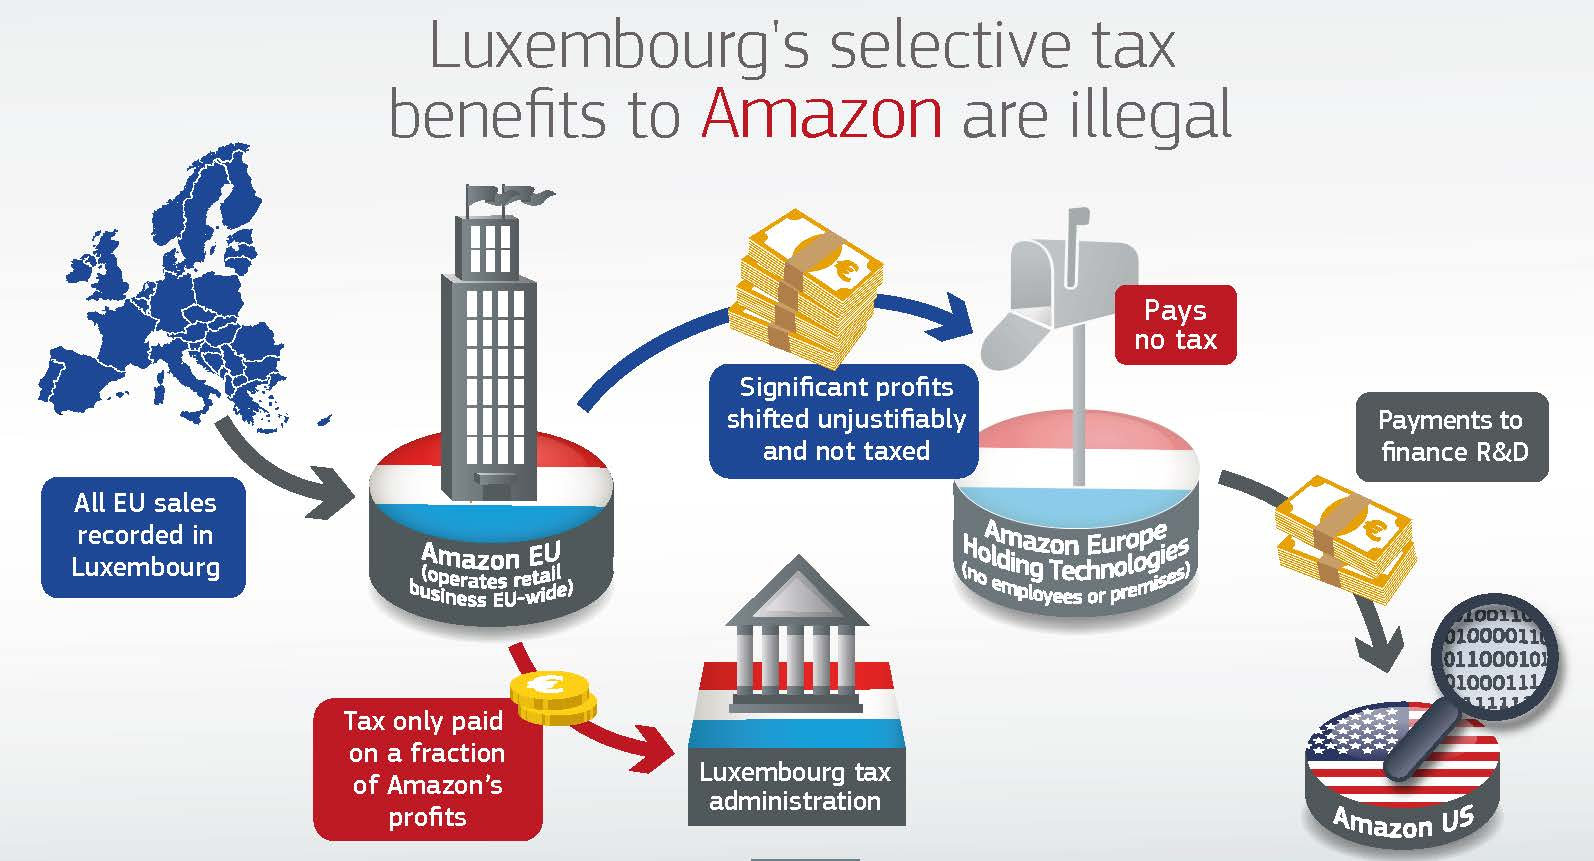 #FactOfTheDay 5/10/2017: The EU Commission finds illegal tax benefits for Amazon by Luxembourg